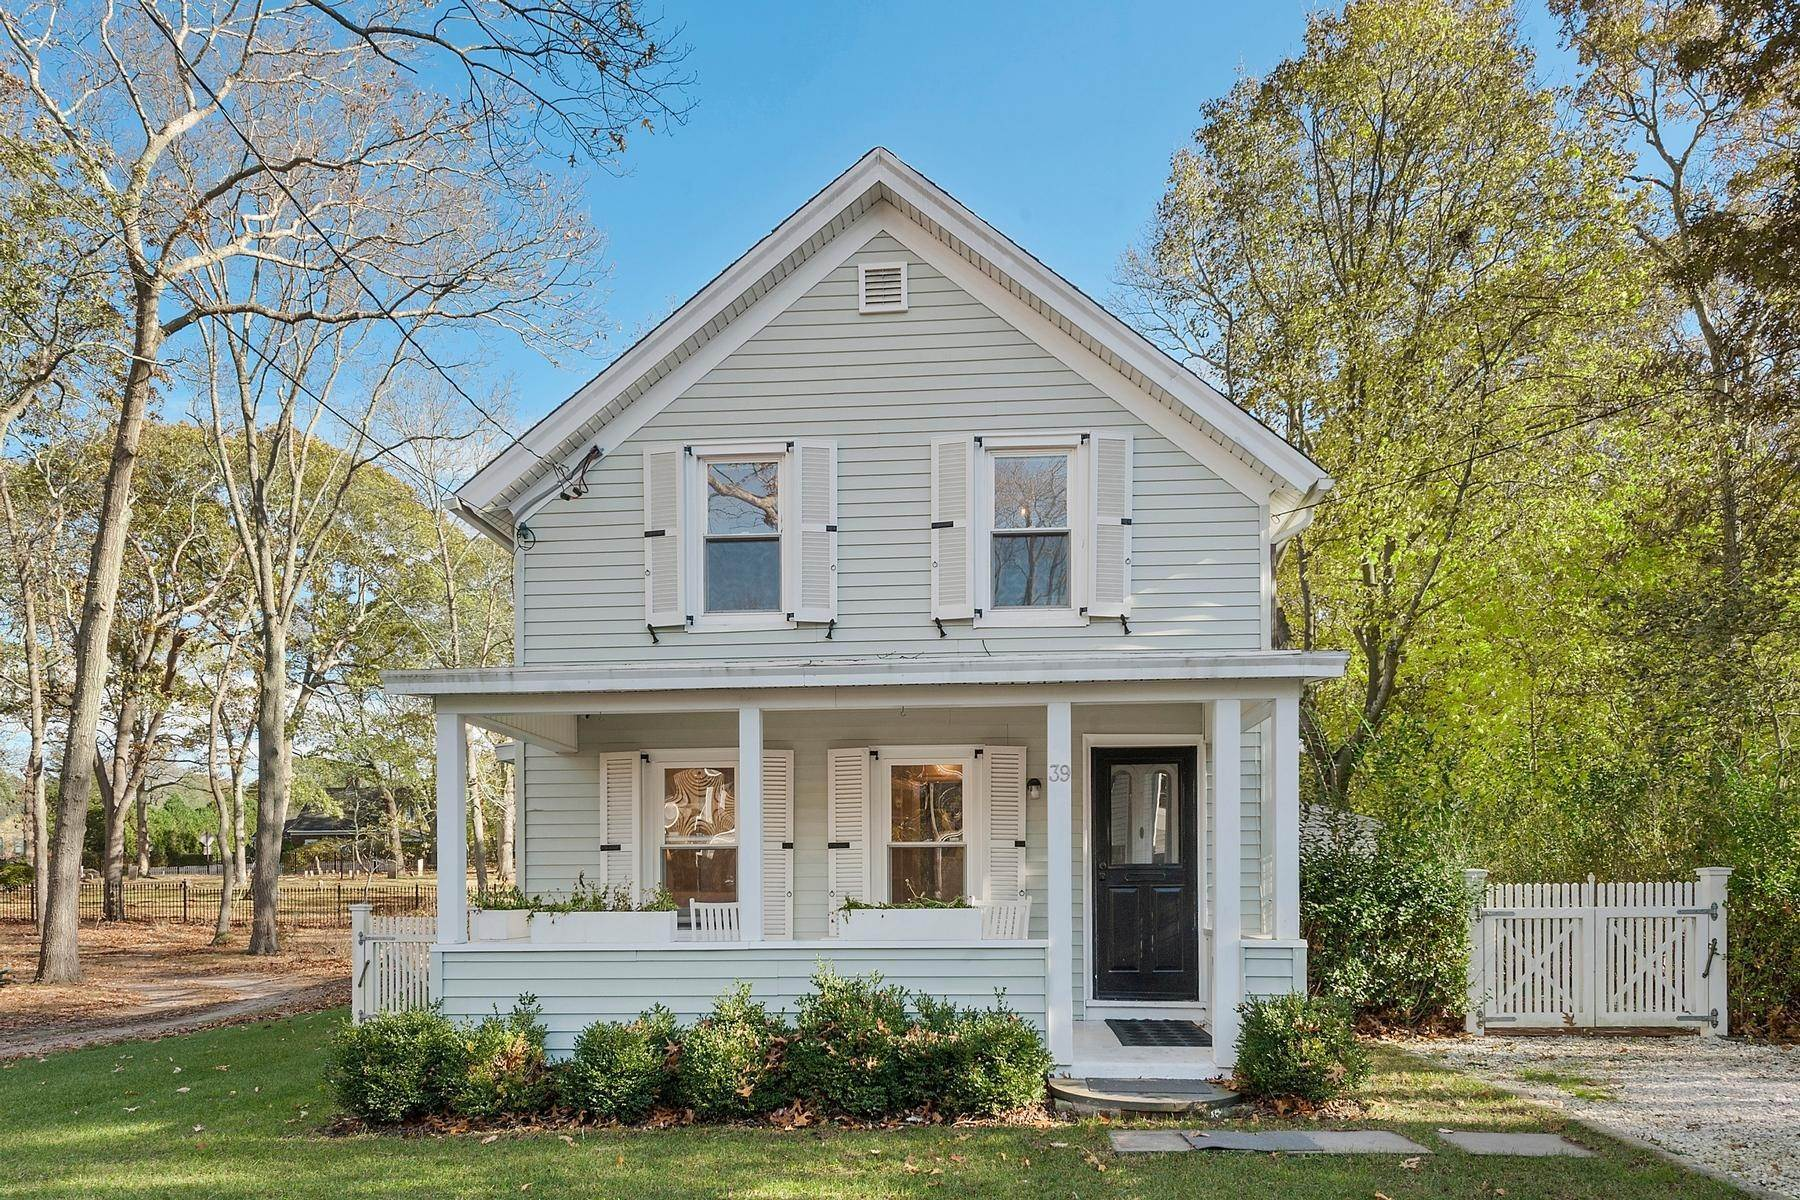 Single Family Home at Historic Home In Sag Harbor Village Sag Harbor, NY 11963